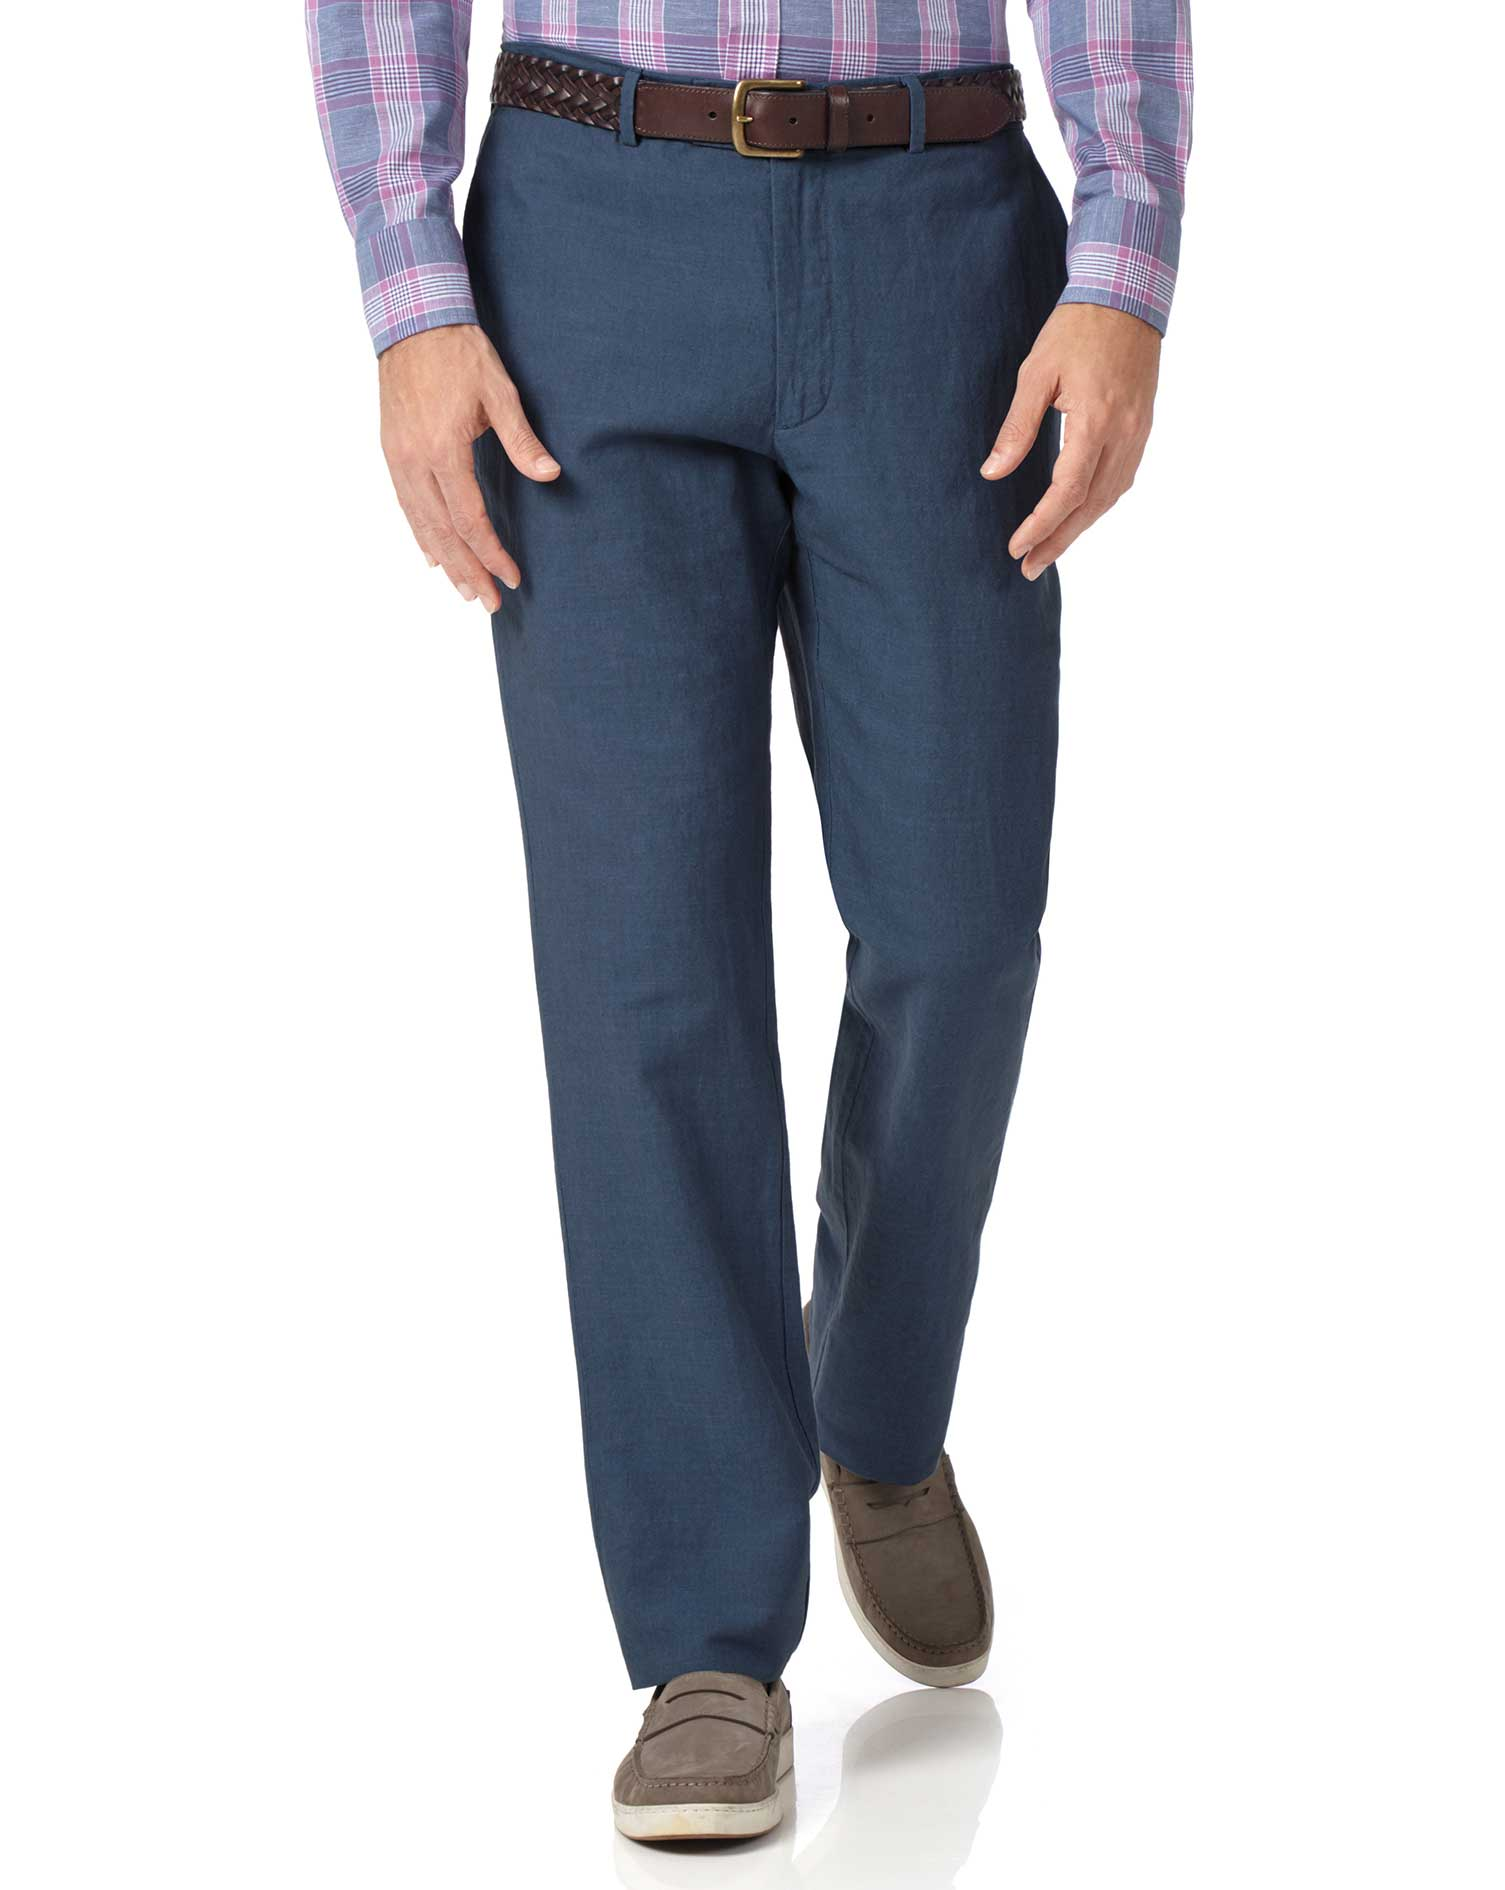 Airforce Blue Classic Fit Cotton Linen Trousers Size W32 L34 by Charles Tyrwhitt